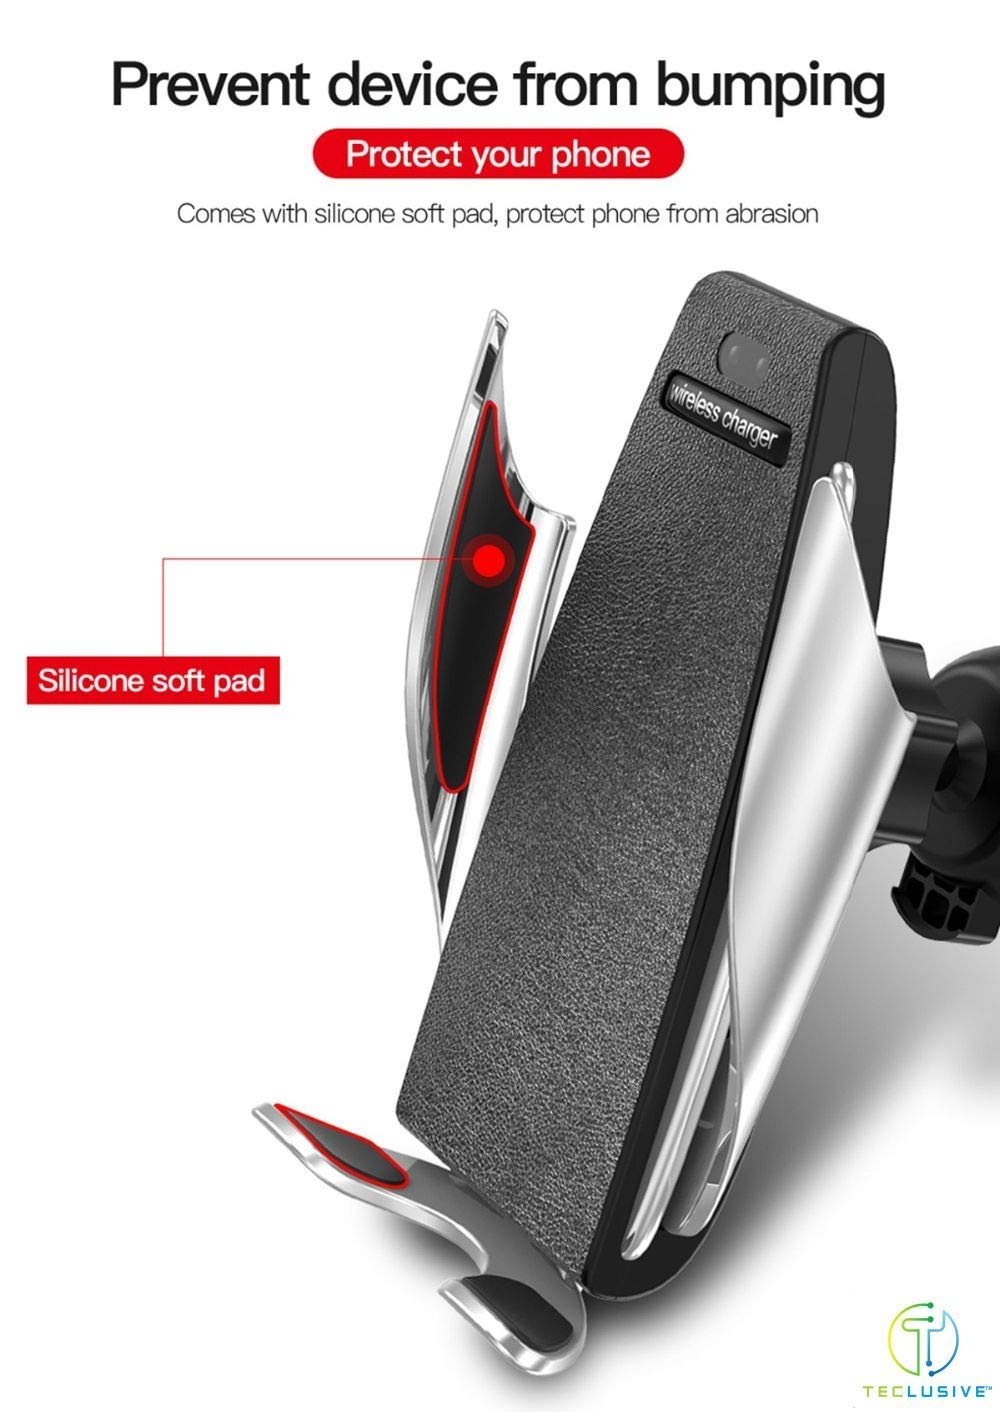 FOONEE Automatic Clamping Wireless Car Mount 10W Fast Charger Holder for iPhone XR XS Max X 8 8 Plus, Samsung, All Infrared Motion Sensor Automatic Open Clamp